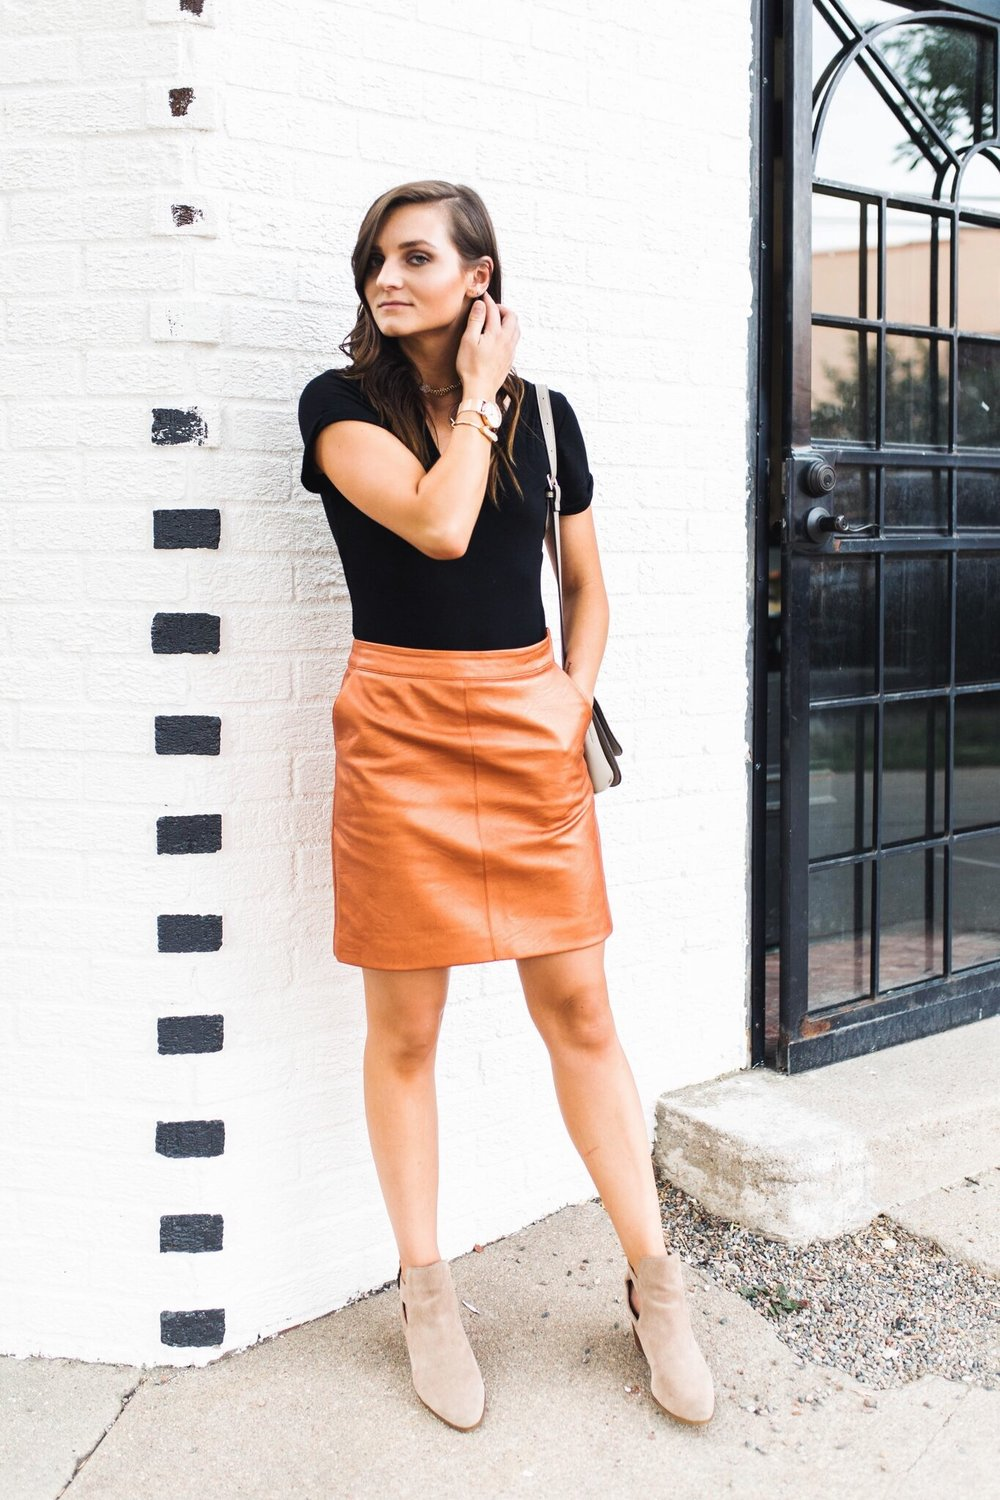 """<img src = """"two-ways-to-wear-a-simple-black-tee.jpg"""" alt =""""Denver-fashion-blogger-shows-how-to-style-a-simple-black-tee-worn-with-topshop-faux-leather-mini-skirt-and-sole-society-ankle-boots"""">"""